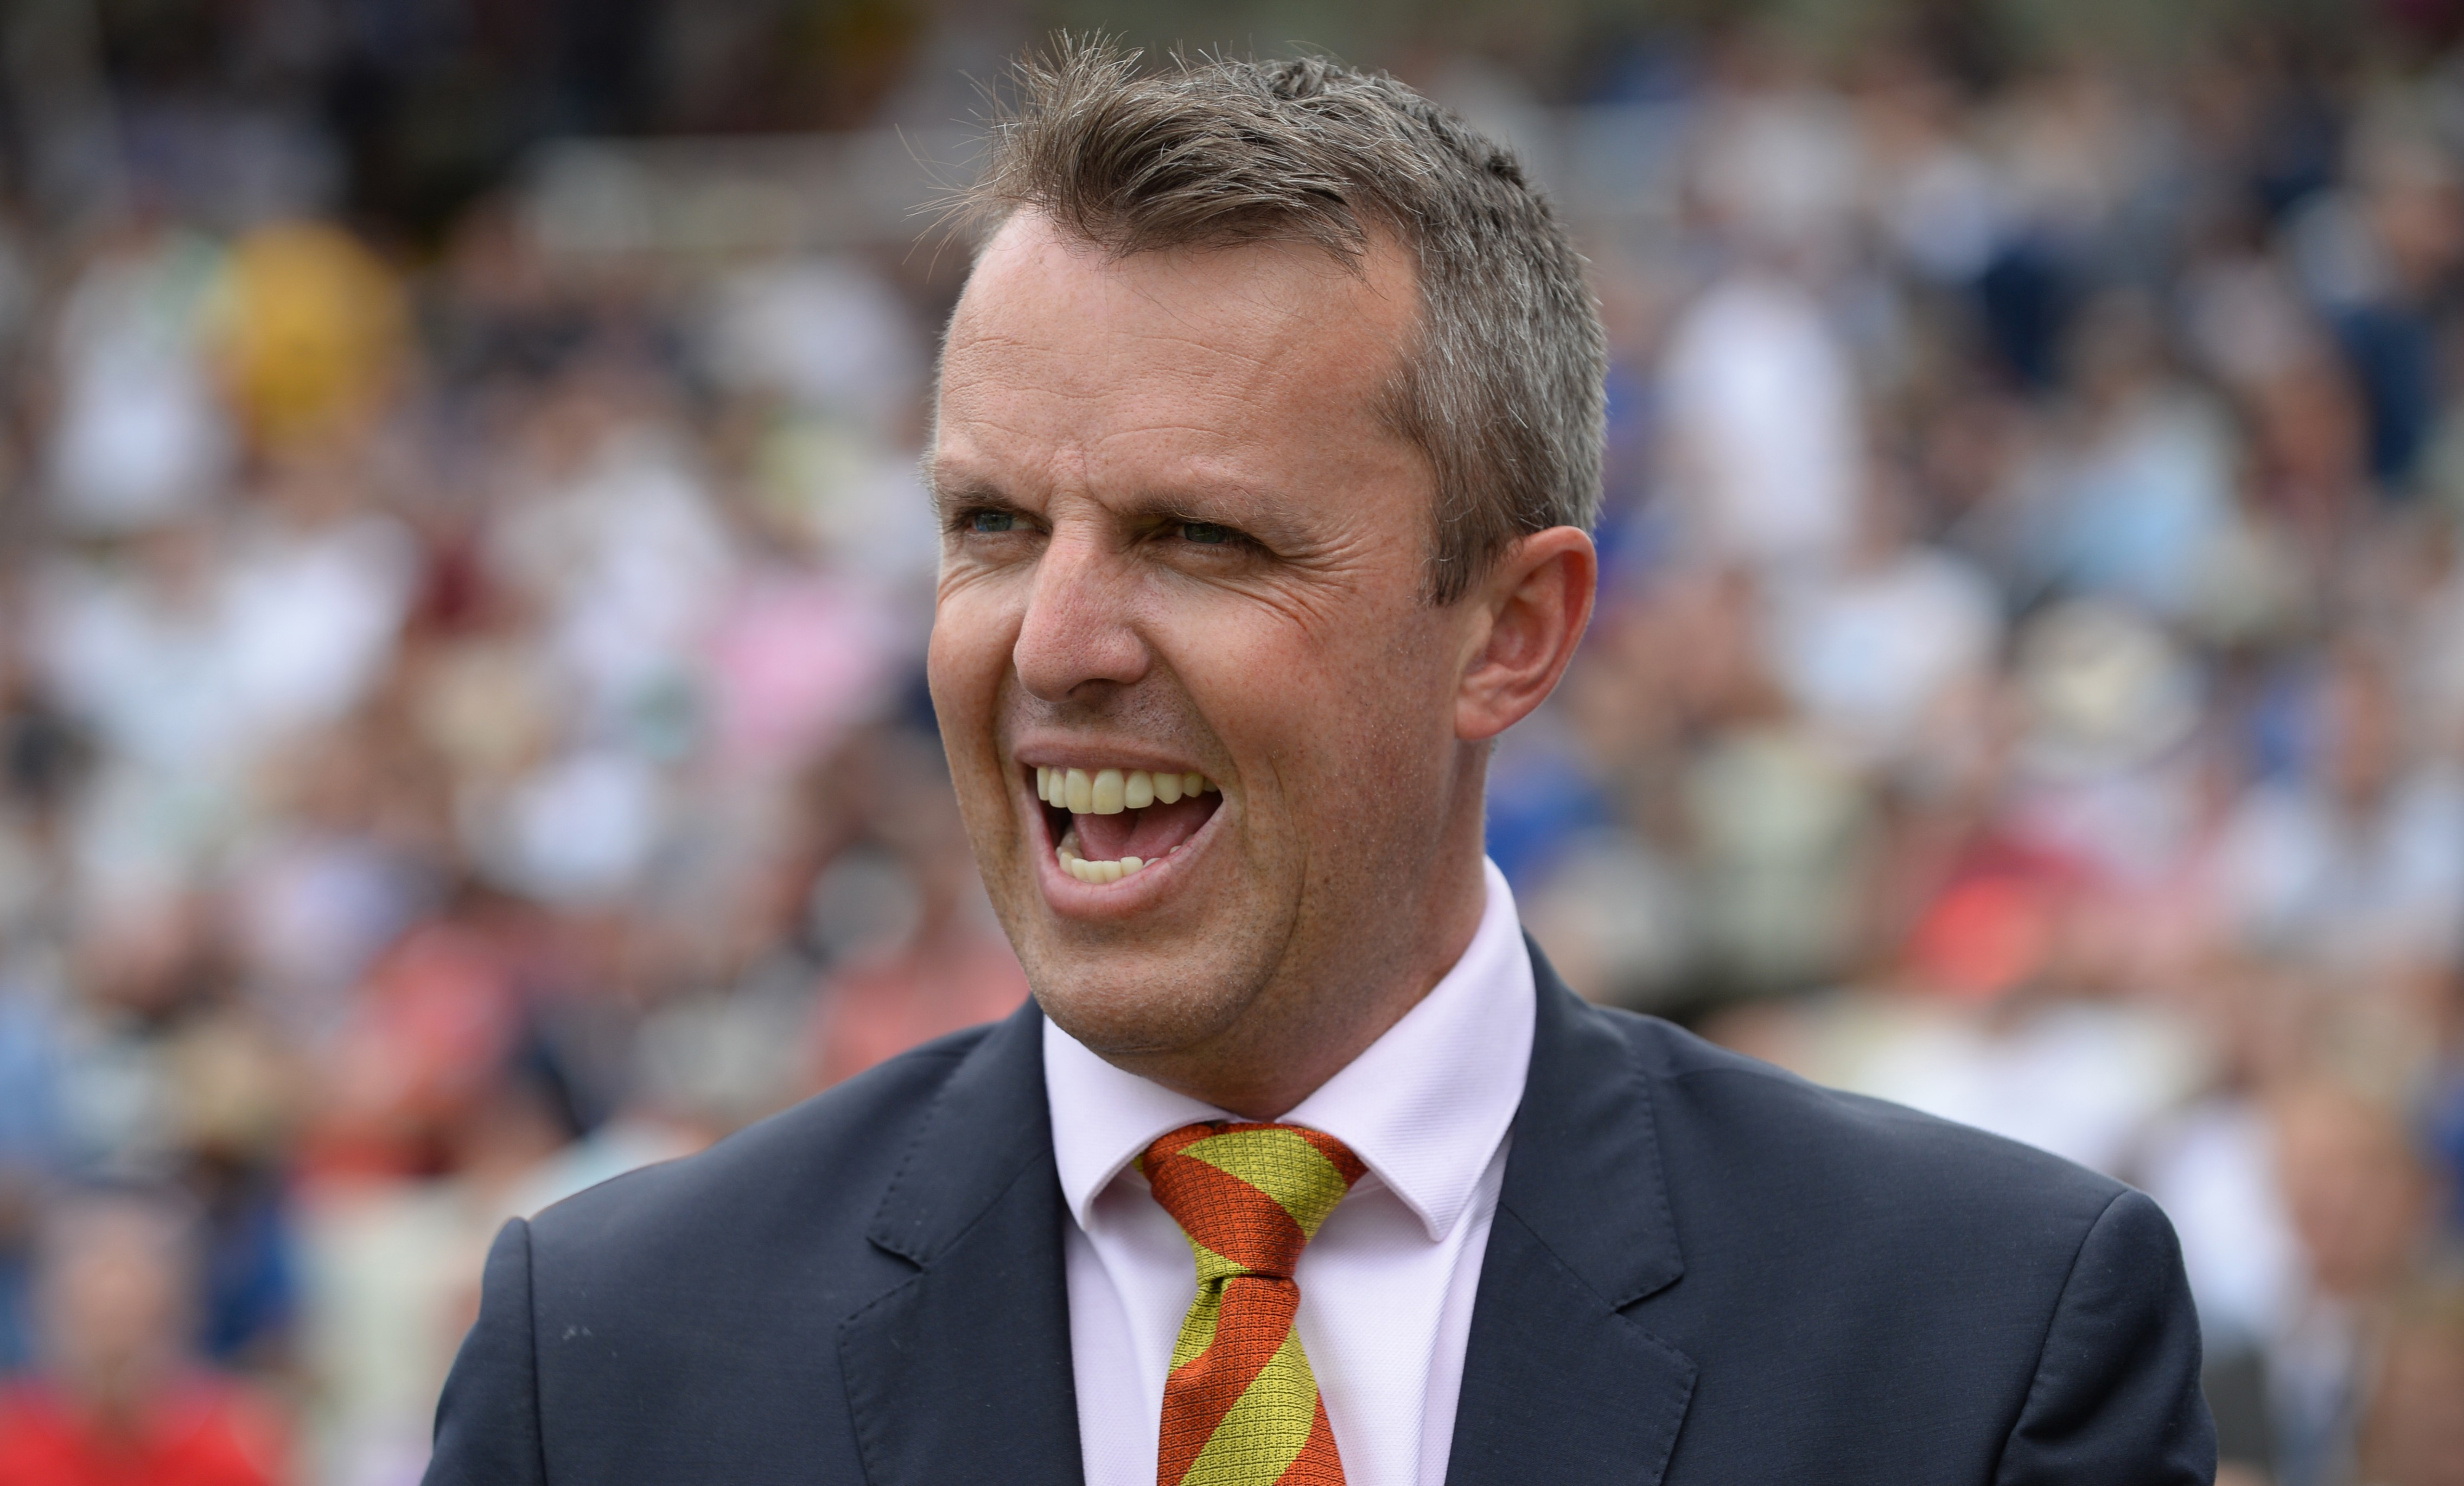 Graeme Swann - Strictly Come Dancing rumours 2018